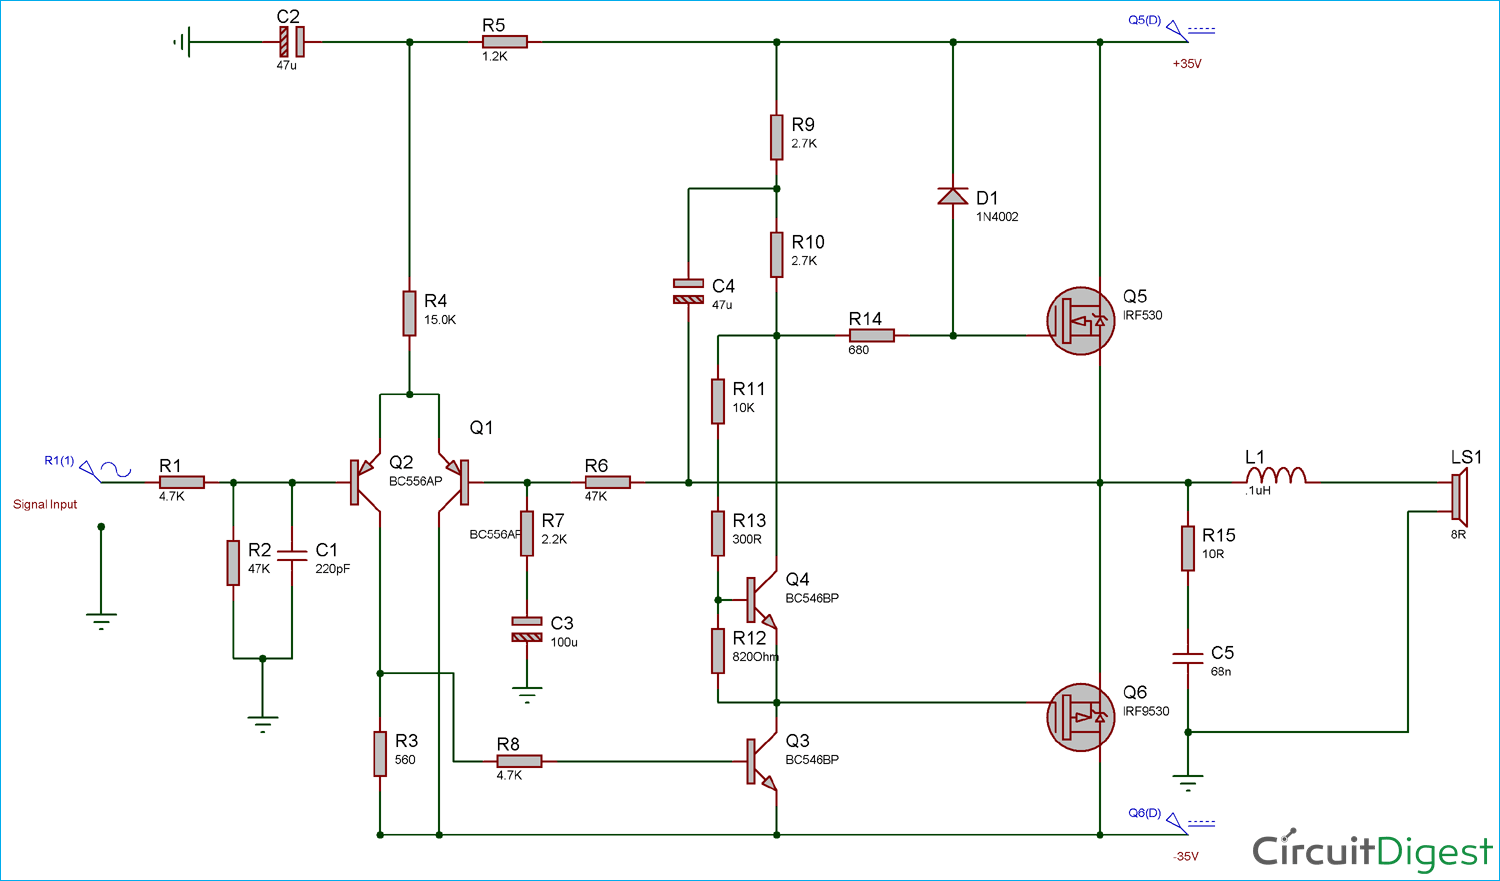 50 Watt Power Amplifier Circuit Diagram using MOSFETs  Watt Lights Wiring Diagram on light electrical wiring, 2 lights 2 switches diagram, light wiring parts, light installation diagram, ford bronco fuse box diagram, light electrical diagram, 1994 mazda b4000 fuse panel diagram, http diagram, parking lights diagram, light thermostat diagram, circuit diagram, light bar diagram, light body diagram, light transmission diagram, 2007 ford f-150 fuse box diagram, 2004 pontiac grand prix fuse box diagram, light switch, 2004 acura tl fuse box diagram, light bulbs diagram, light roof diagram,